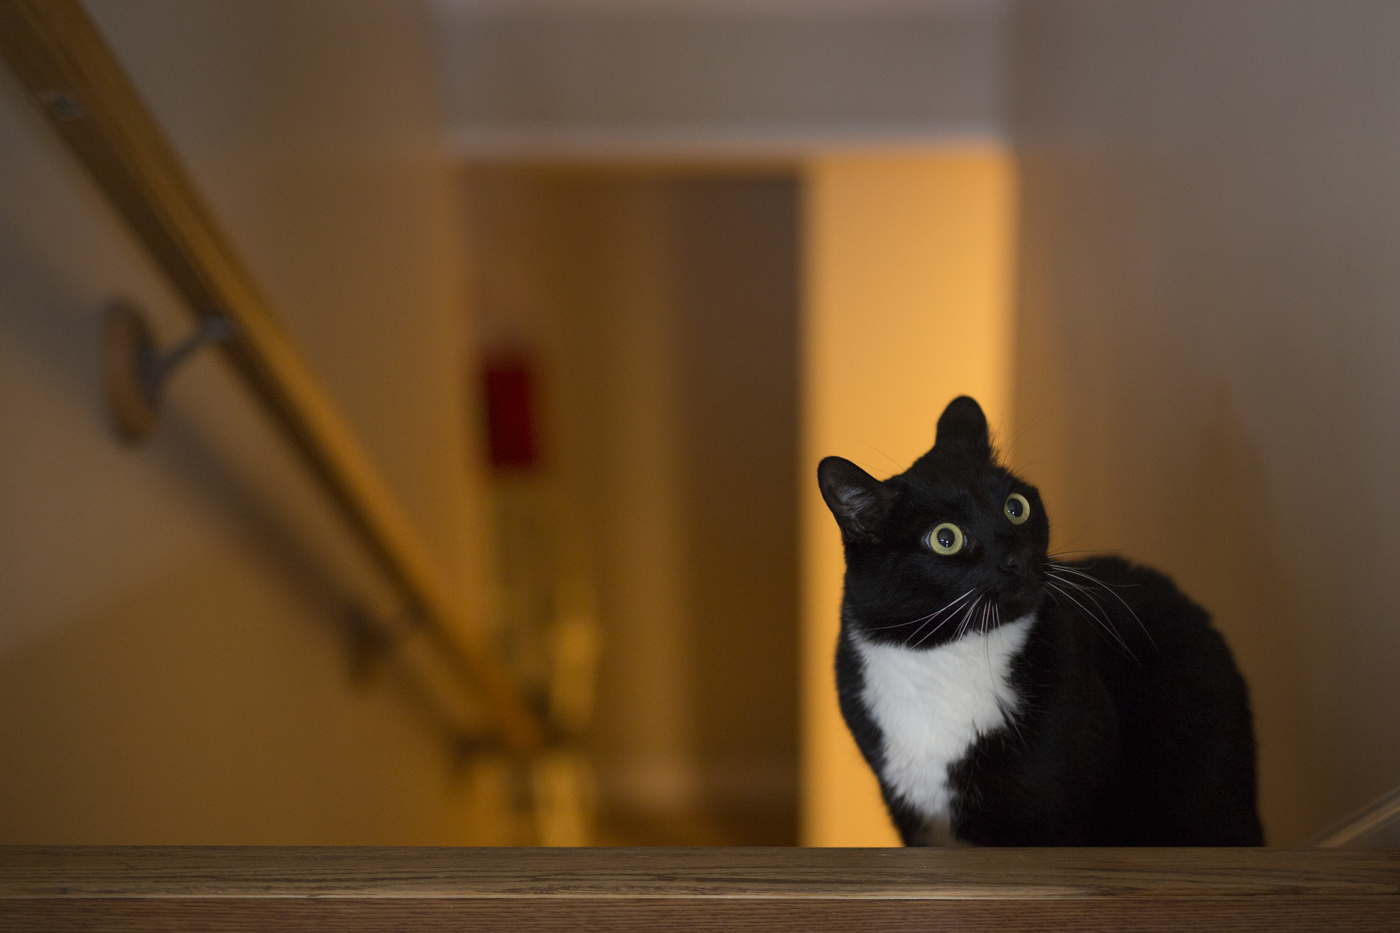 Faith's cat sits inside the house and surveys its surroundings.